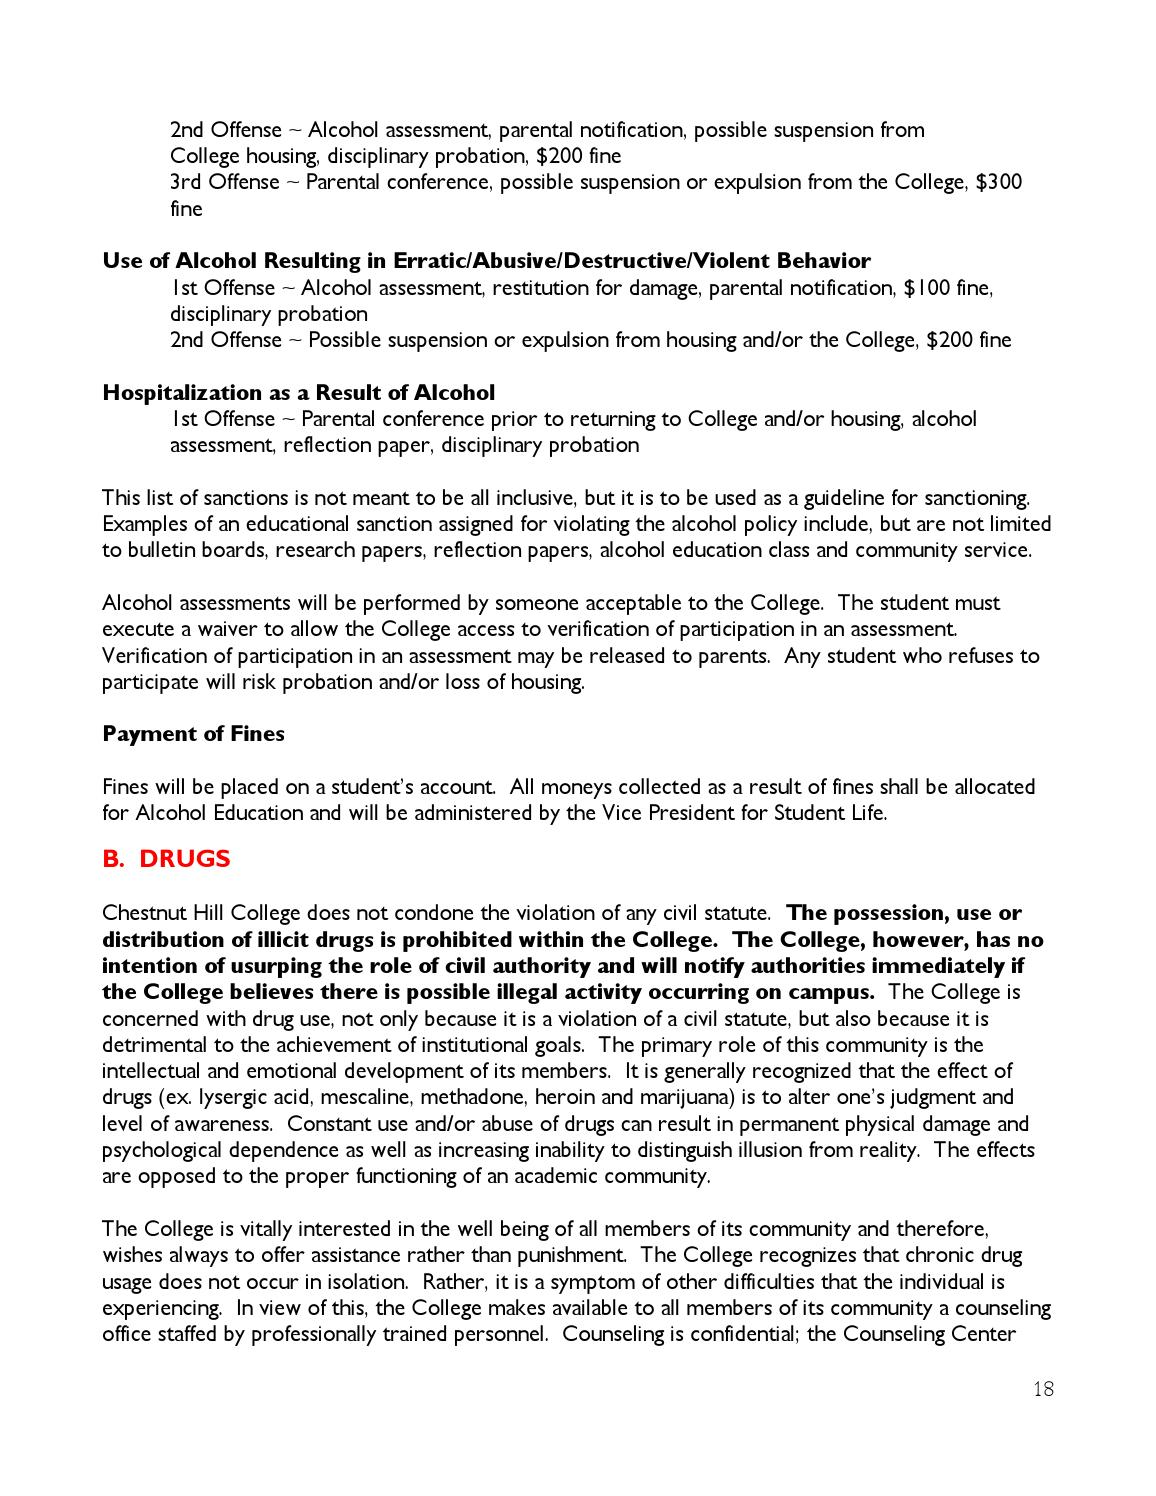 Persuasive Research Paper Topics For College Students  Rusteatrru Persuasive Research Paper Topics For College Students Picture  Essays On Science And Technology also Science And Technology Essay  Doing Assignments Online